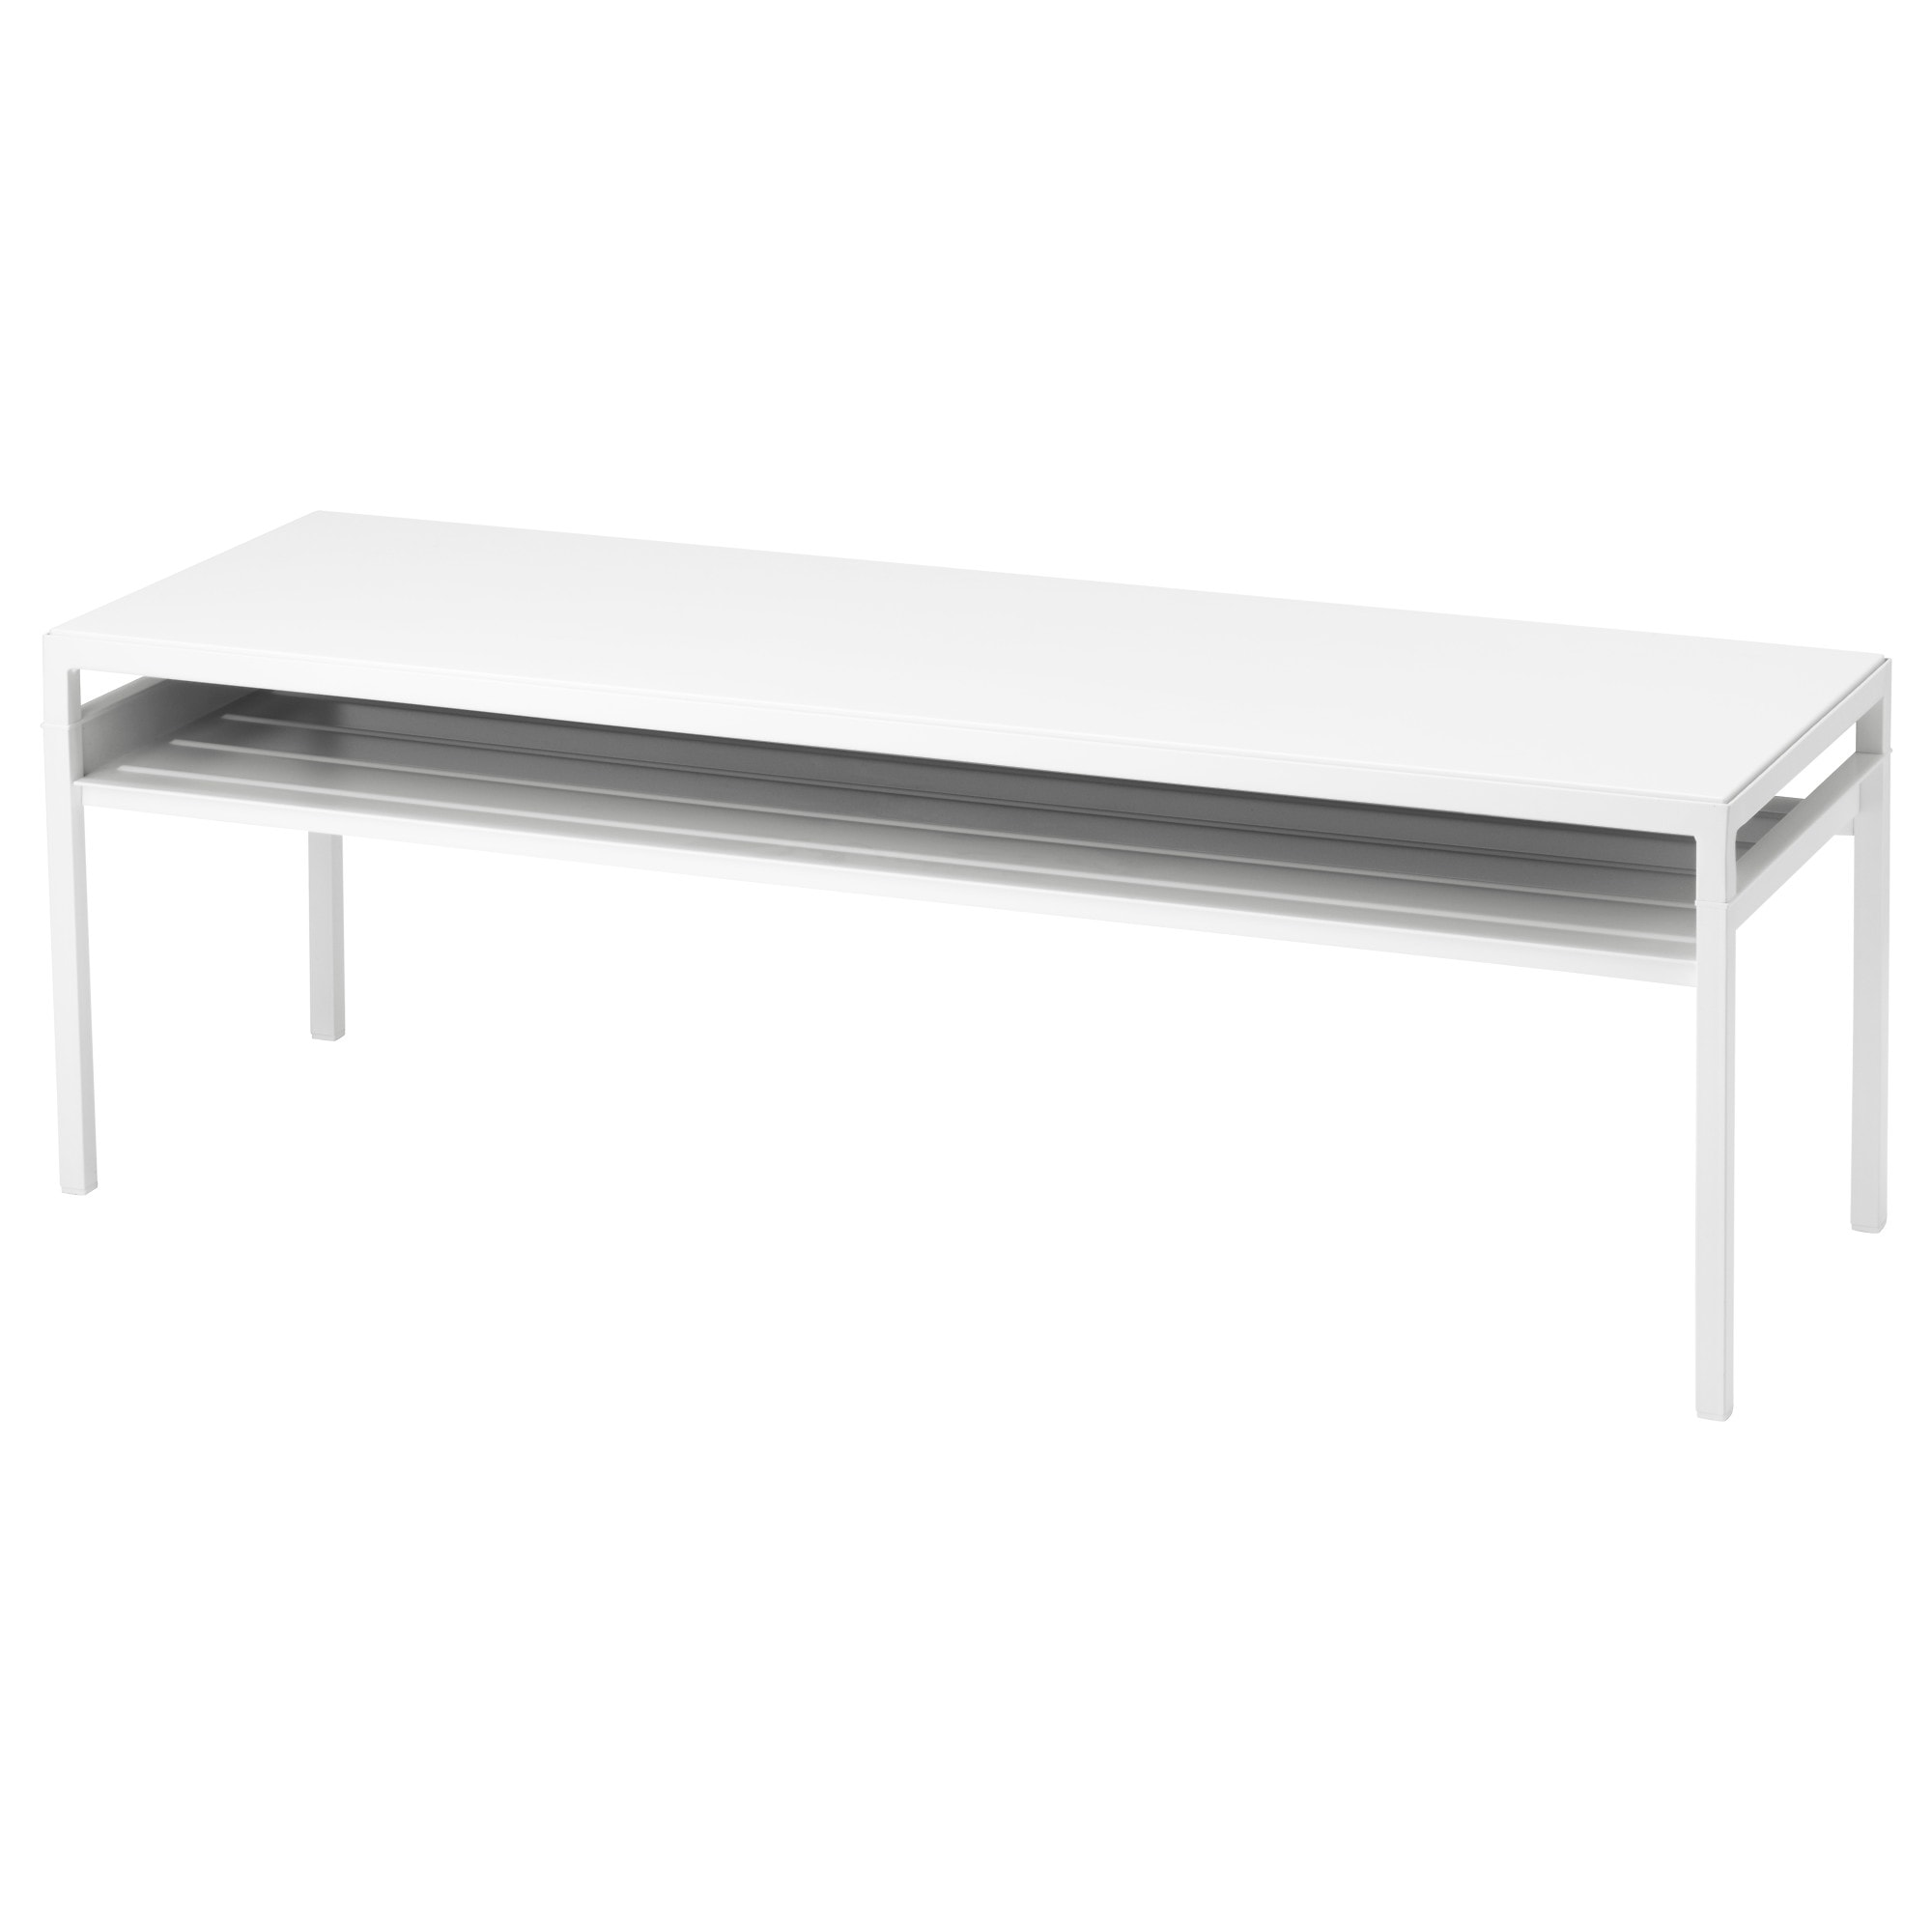 NYBODA Coffee Table W Reversible Table Top, White/gray Length: 47 1/